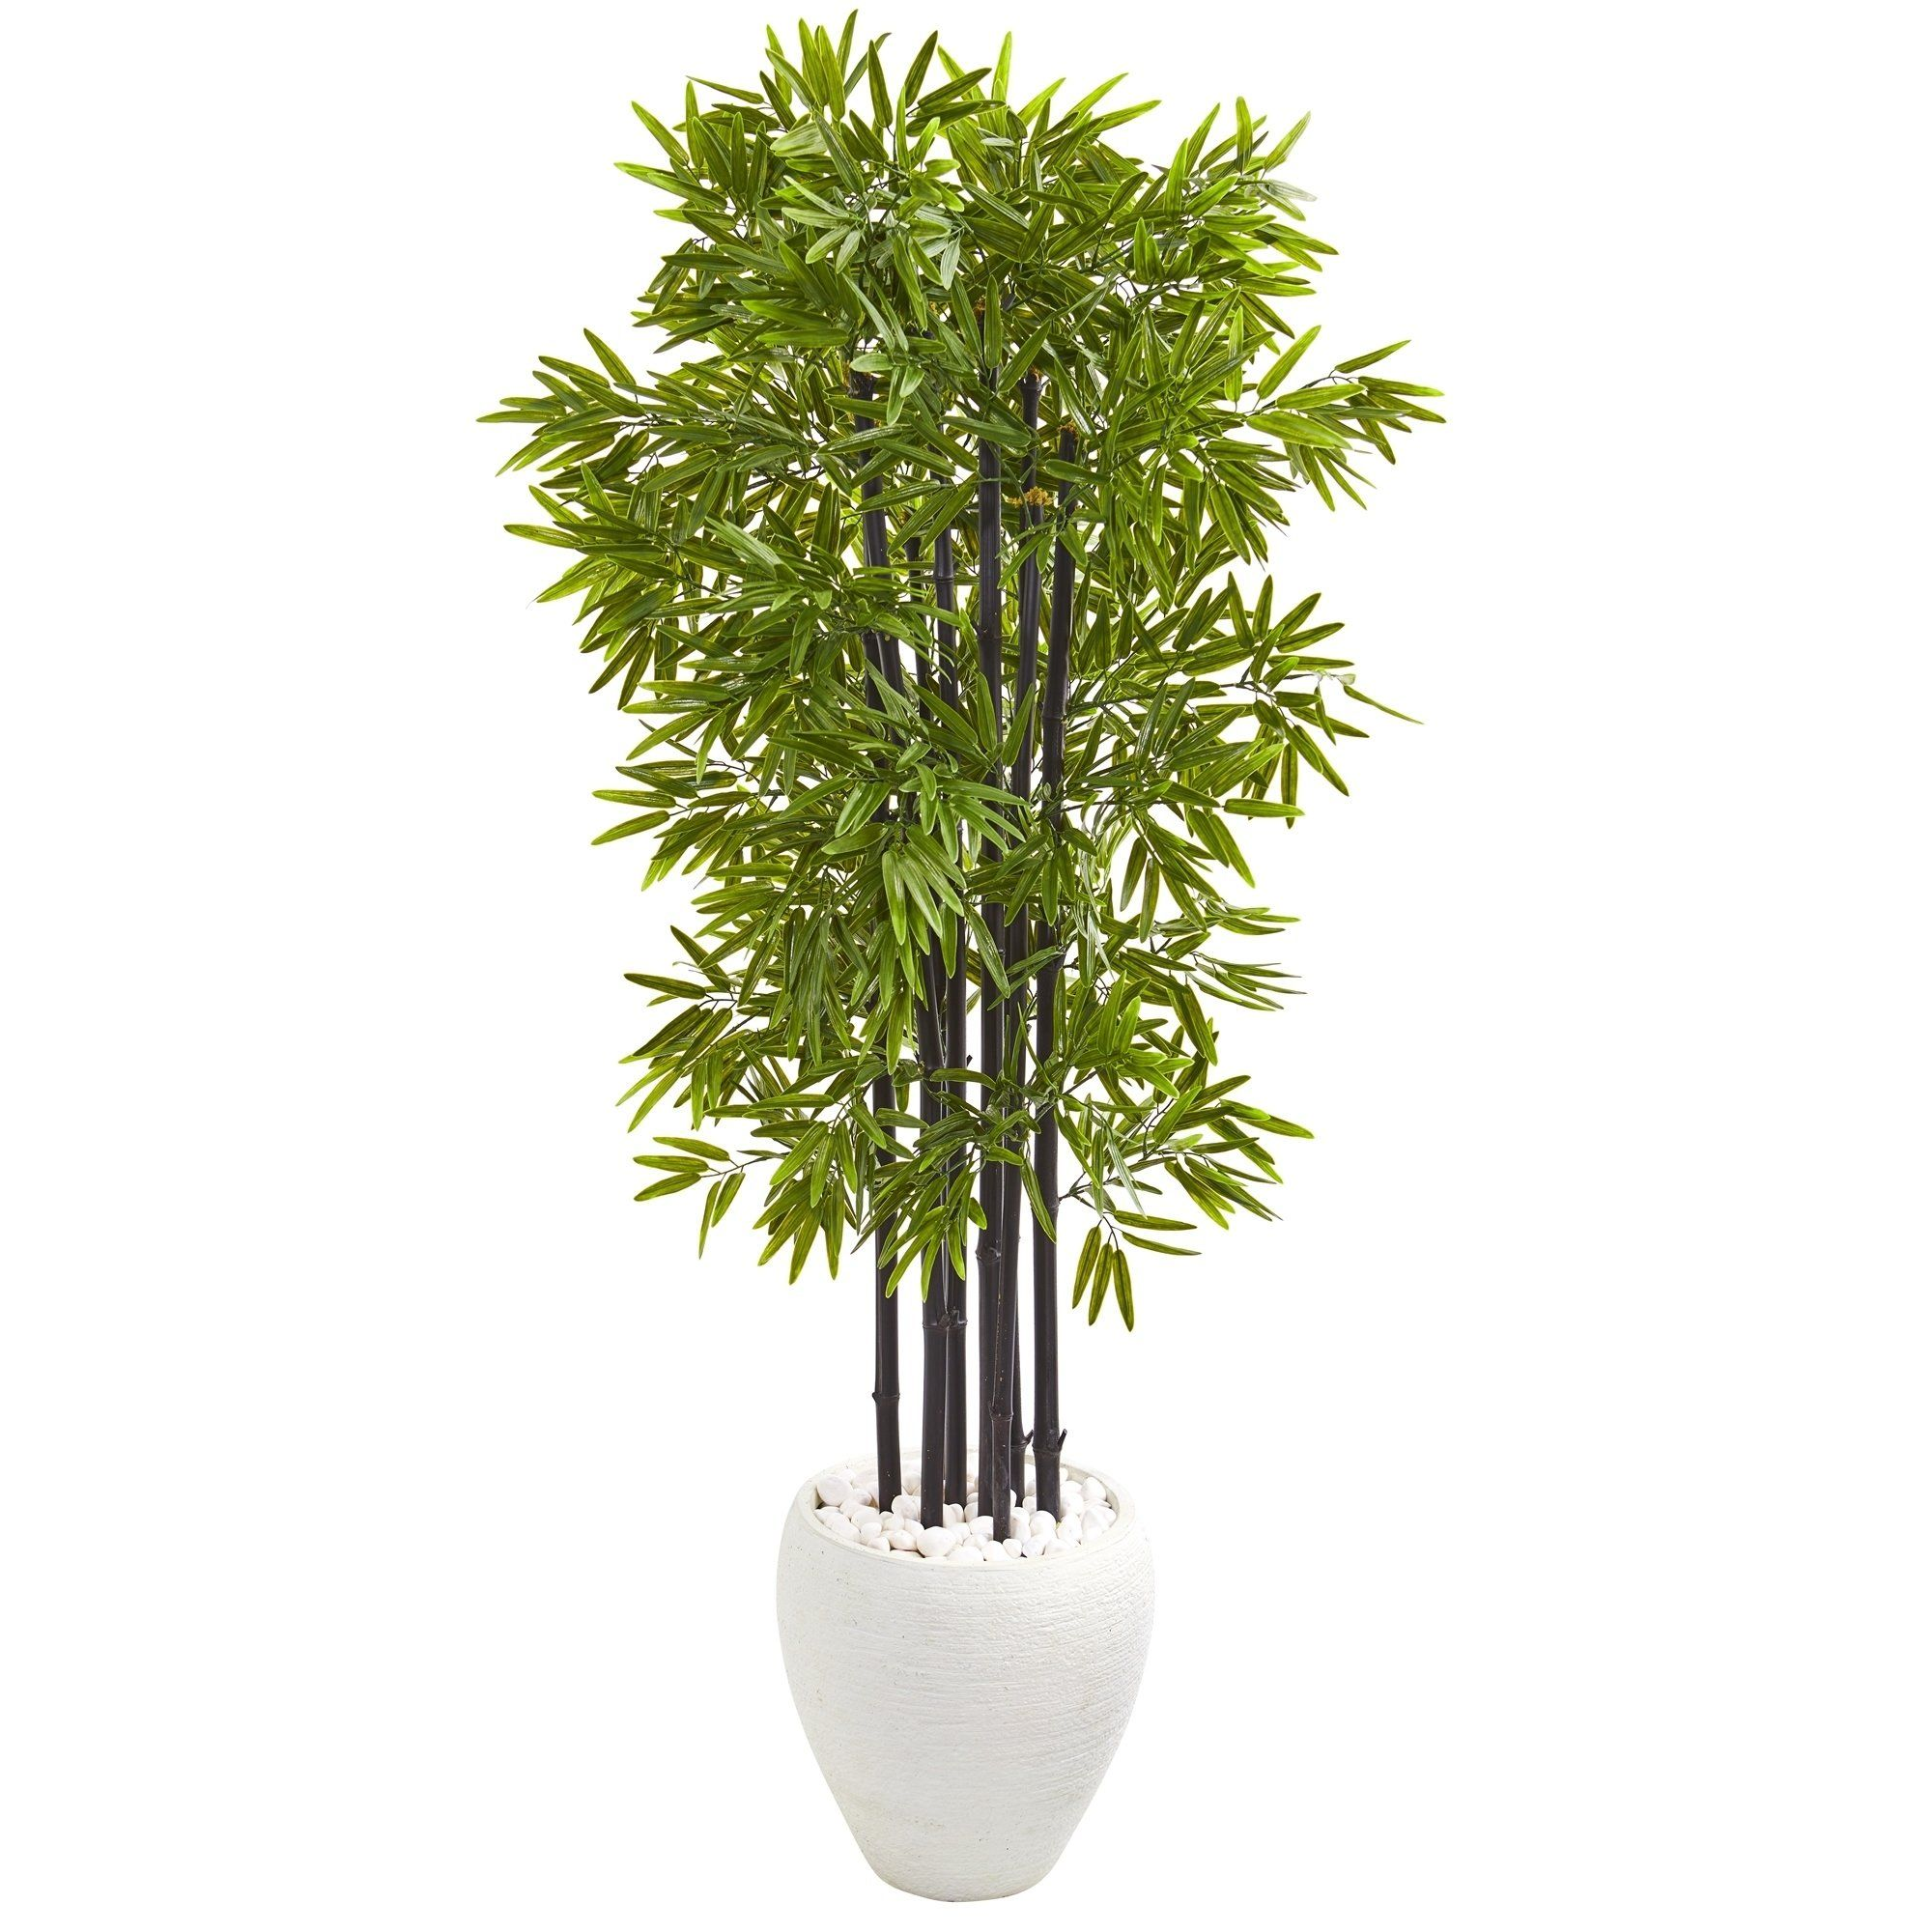 5 bamboo artificial tree with black trunks in white